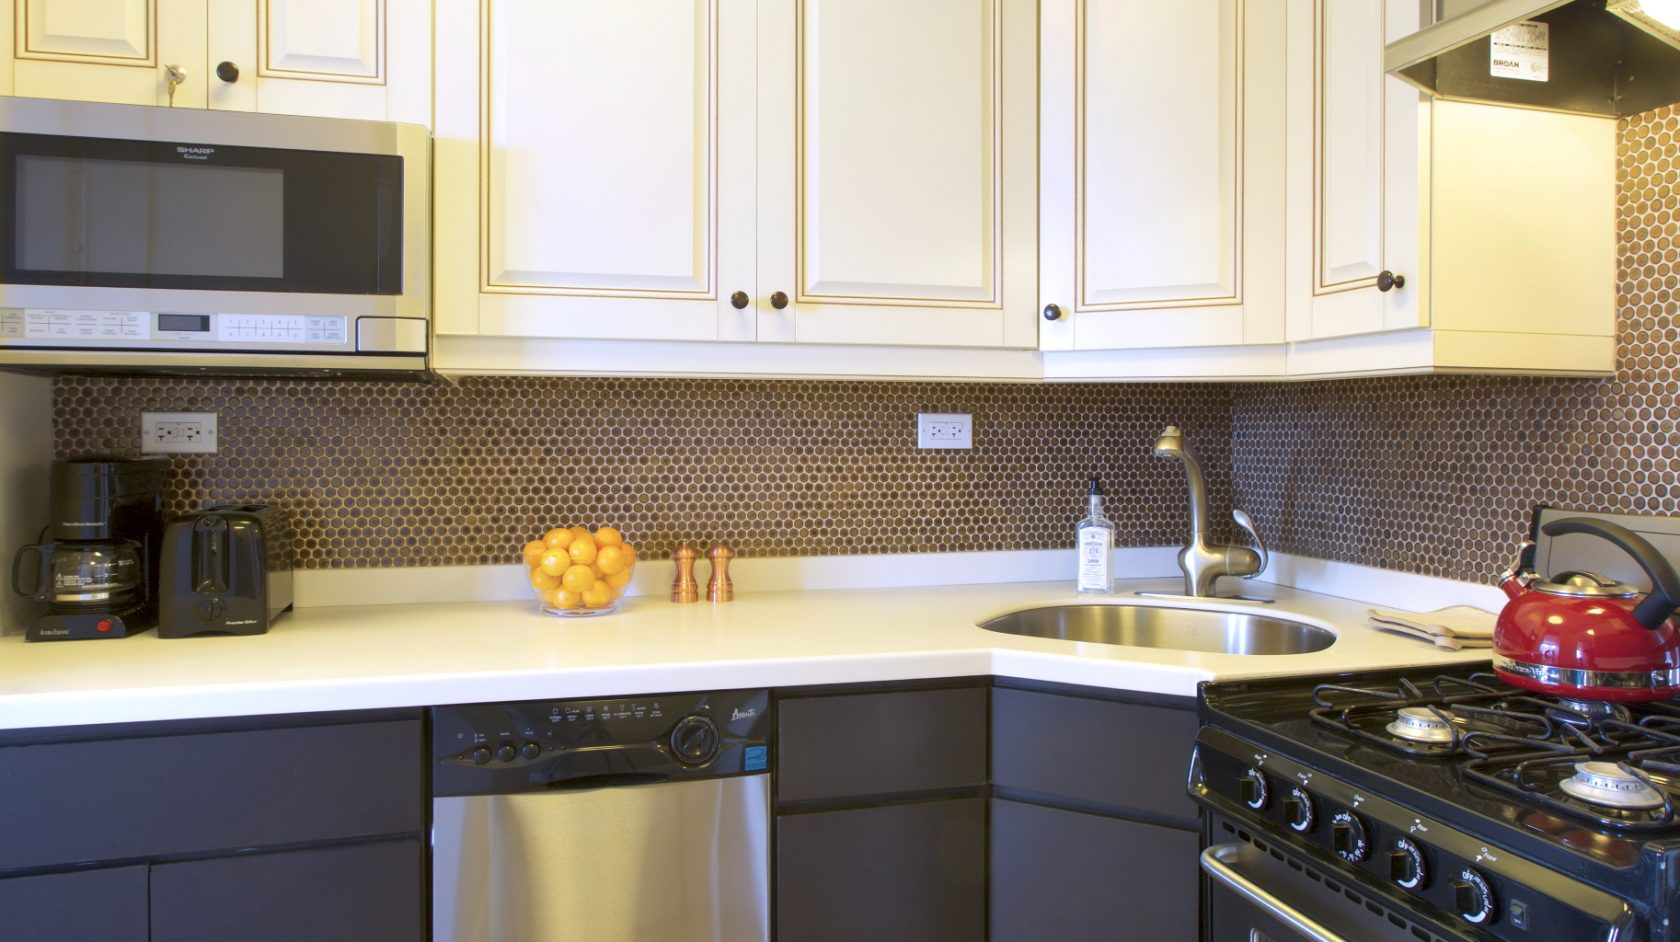 kitchen in new york city extended stay hotel